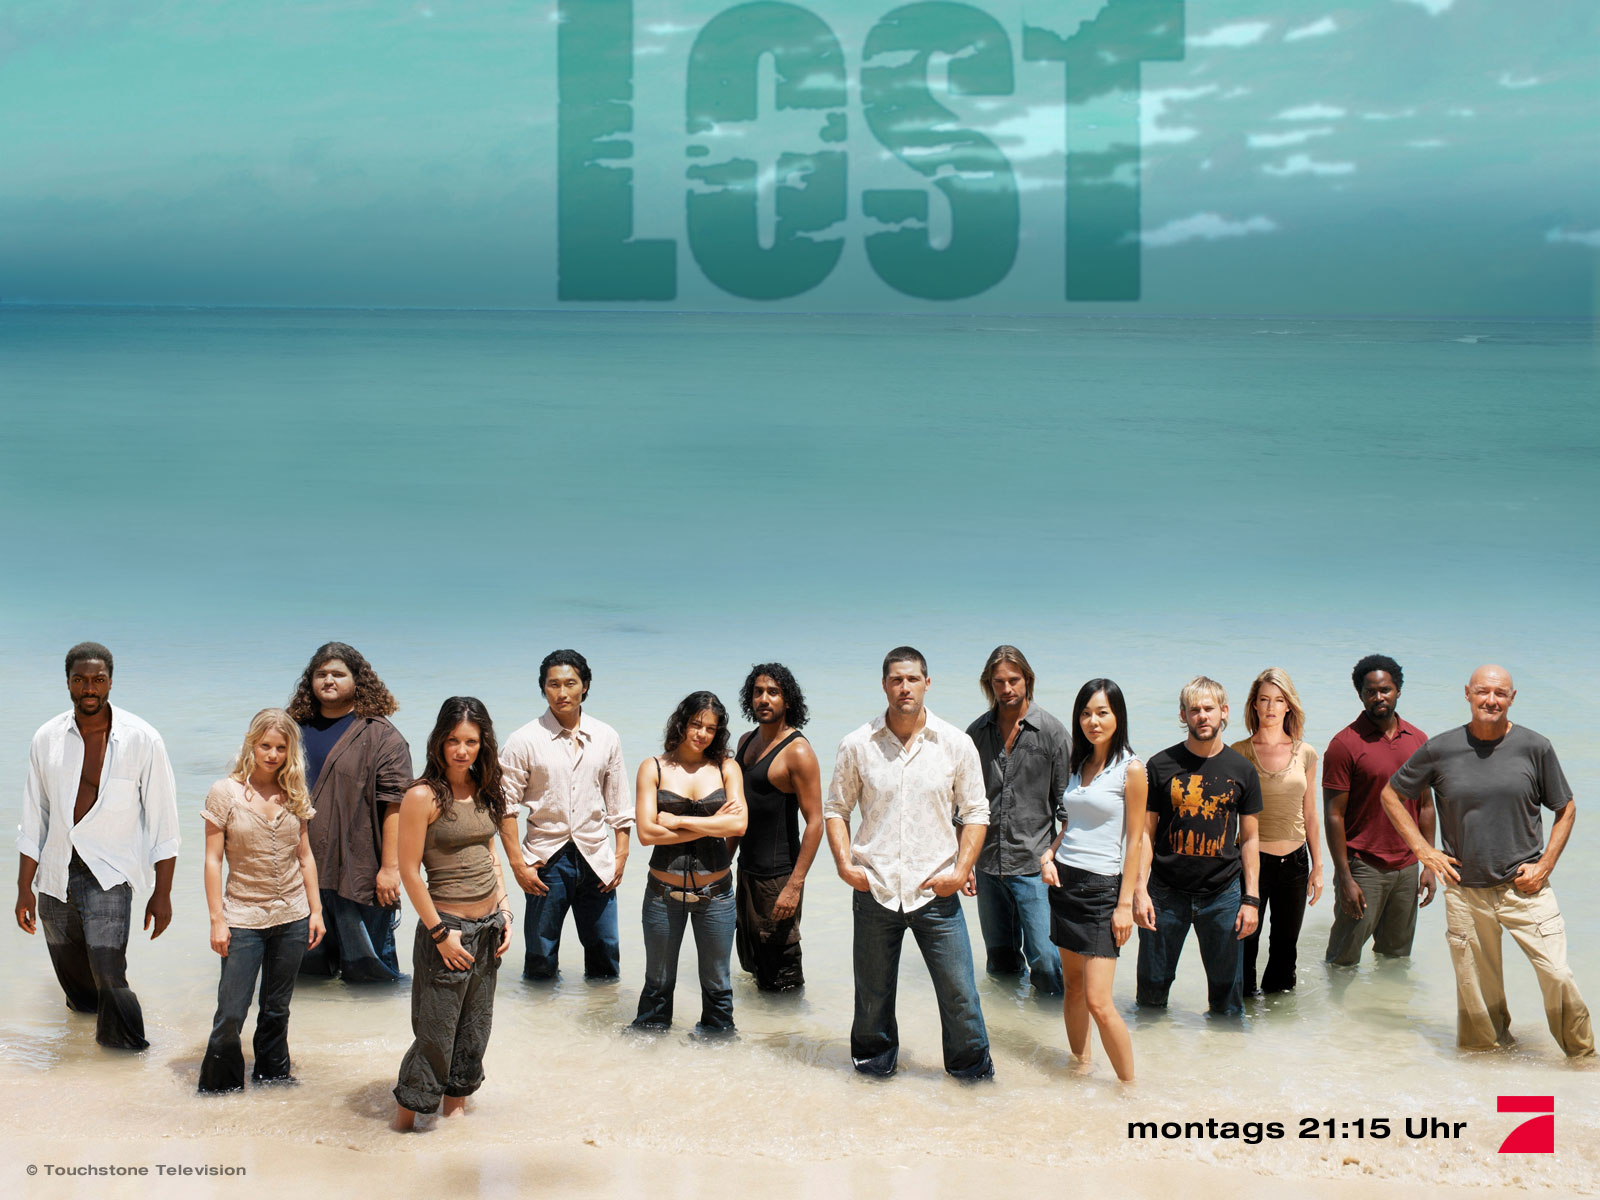 Lost - Before it Lost it | What to Watch | Pinterest | TVs, Movie ...